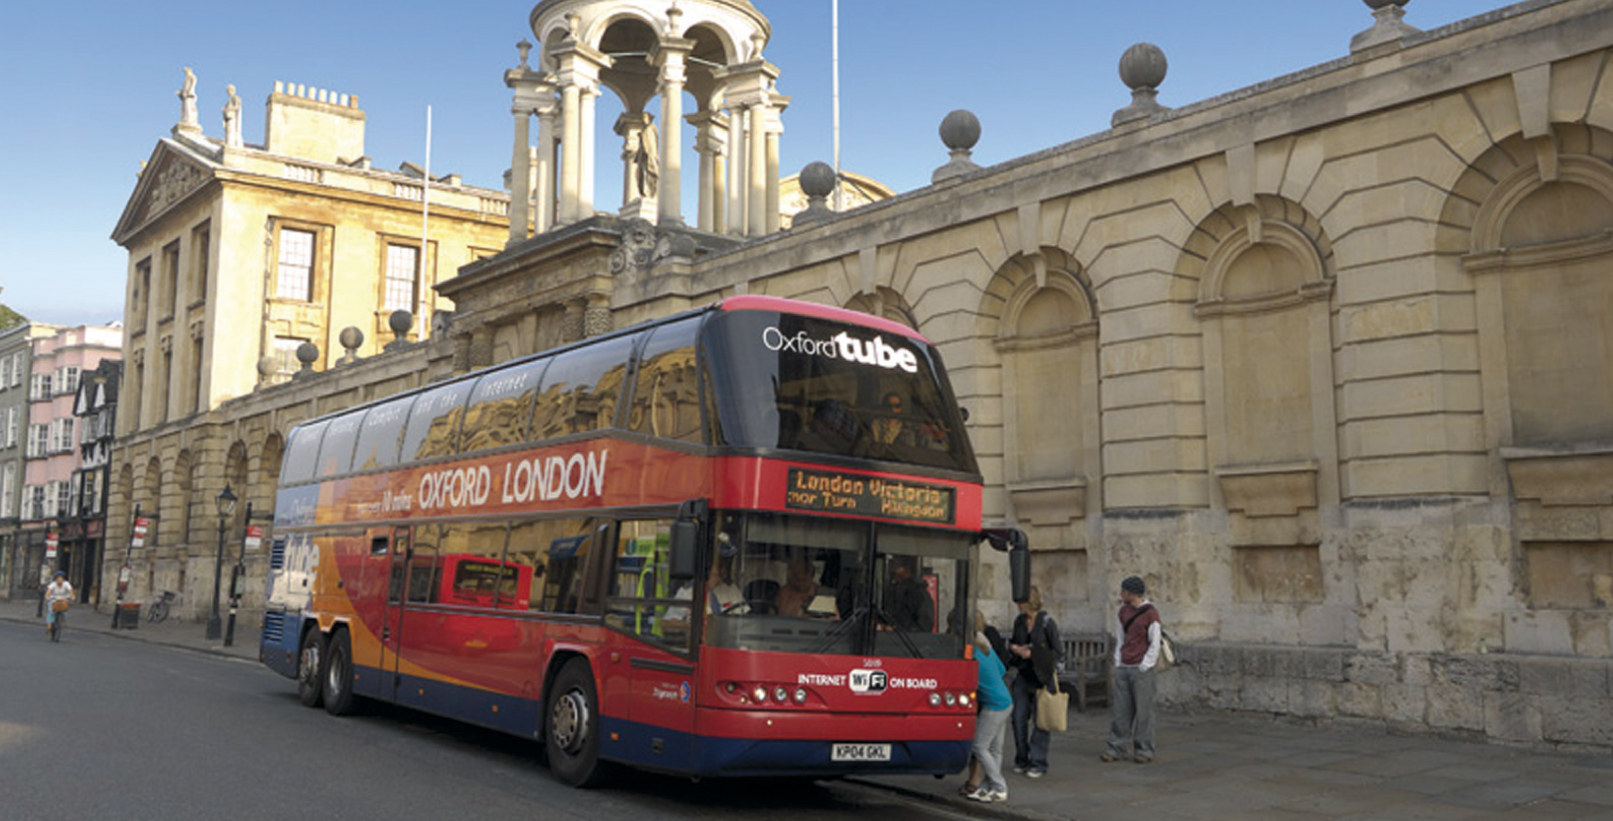 Bus in Oxford